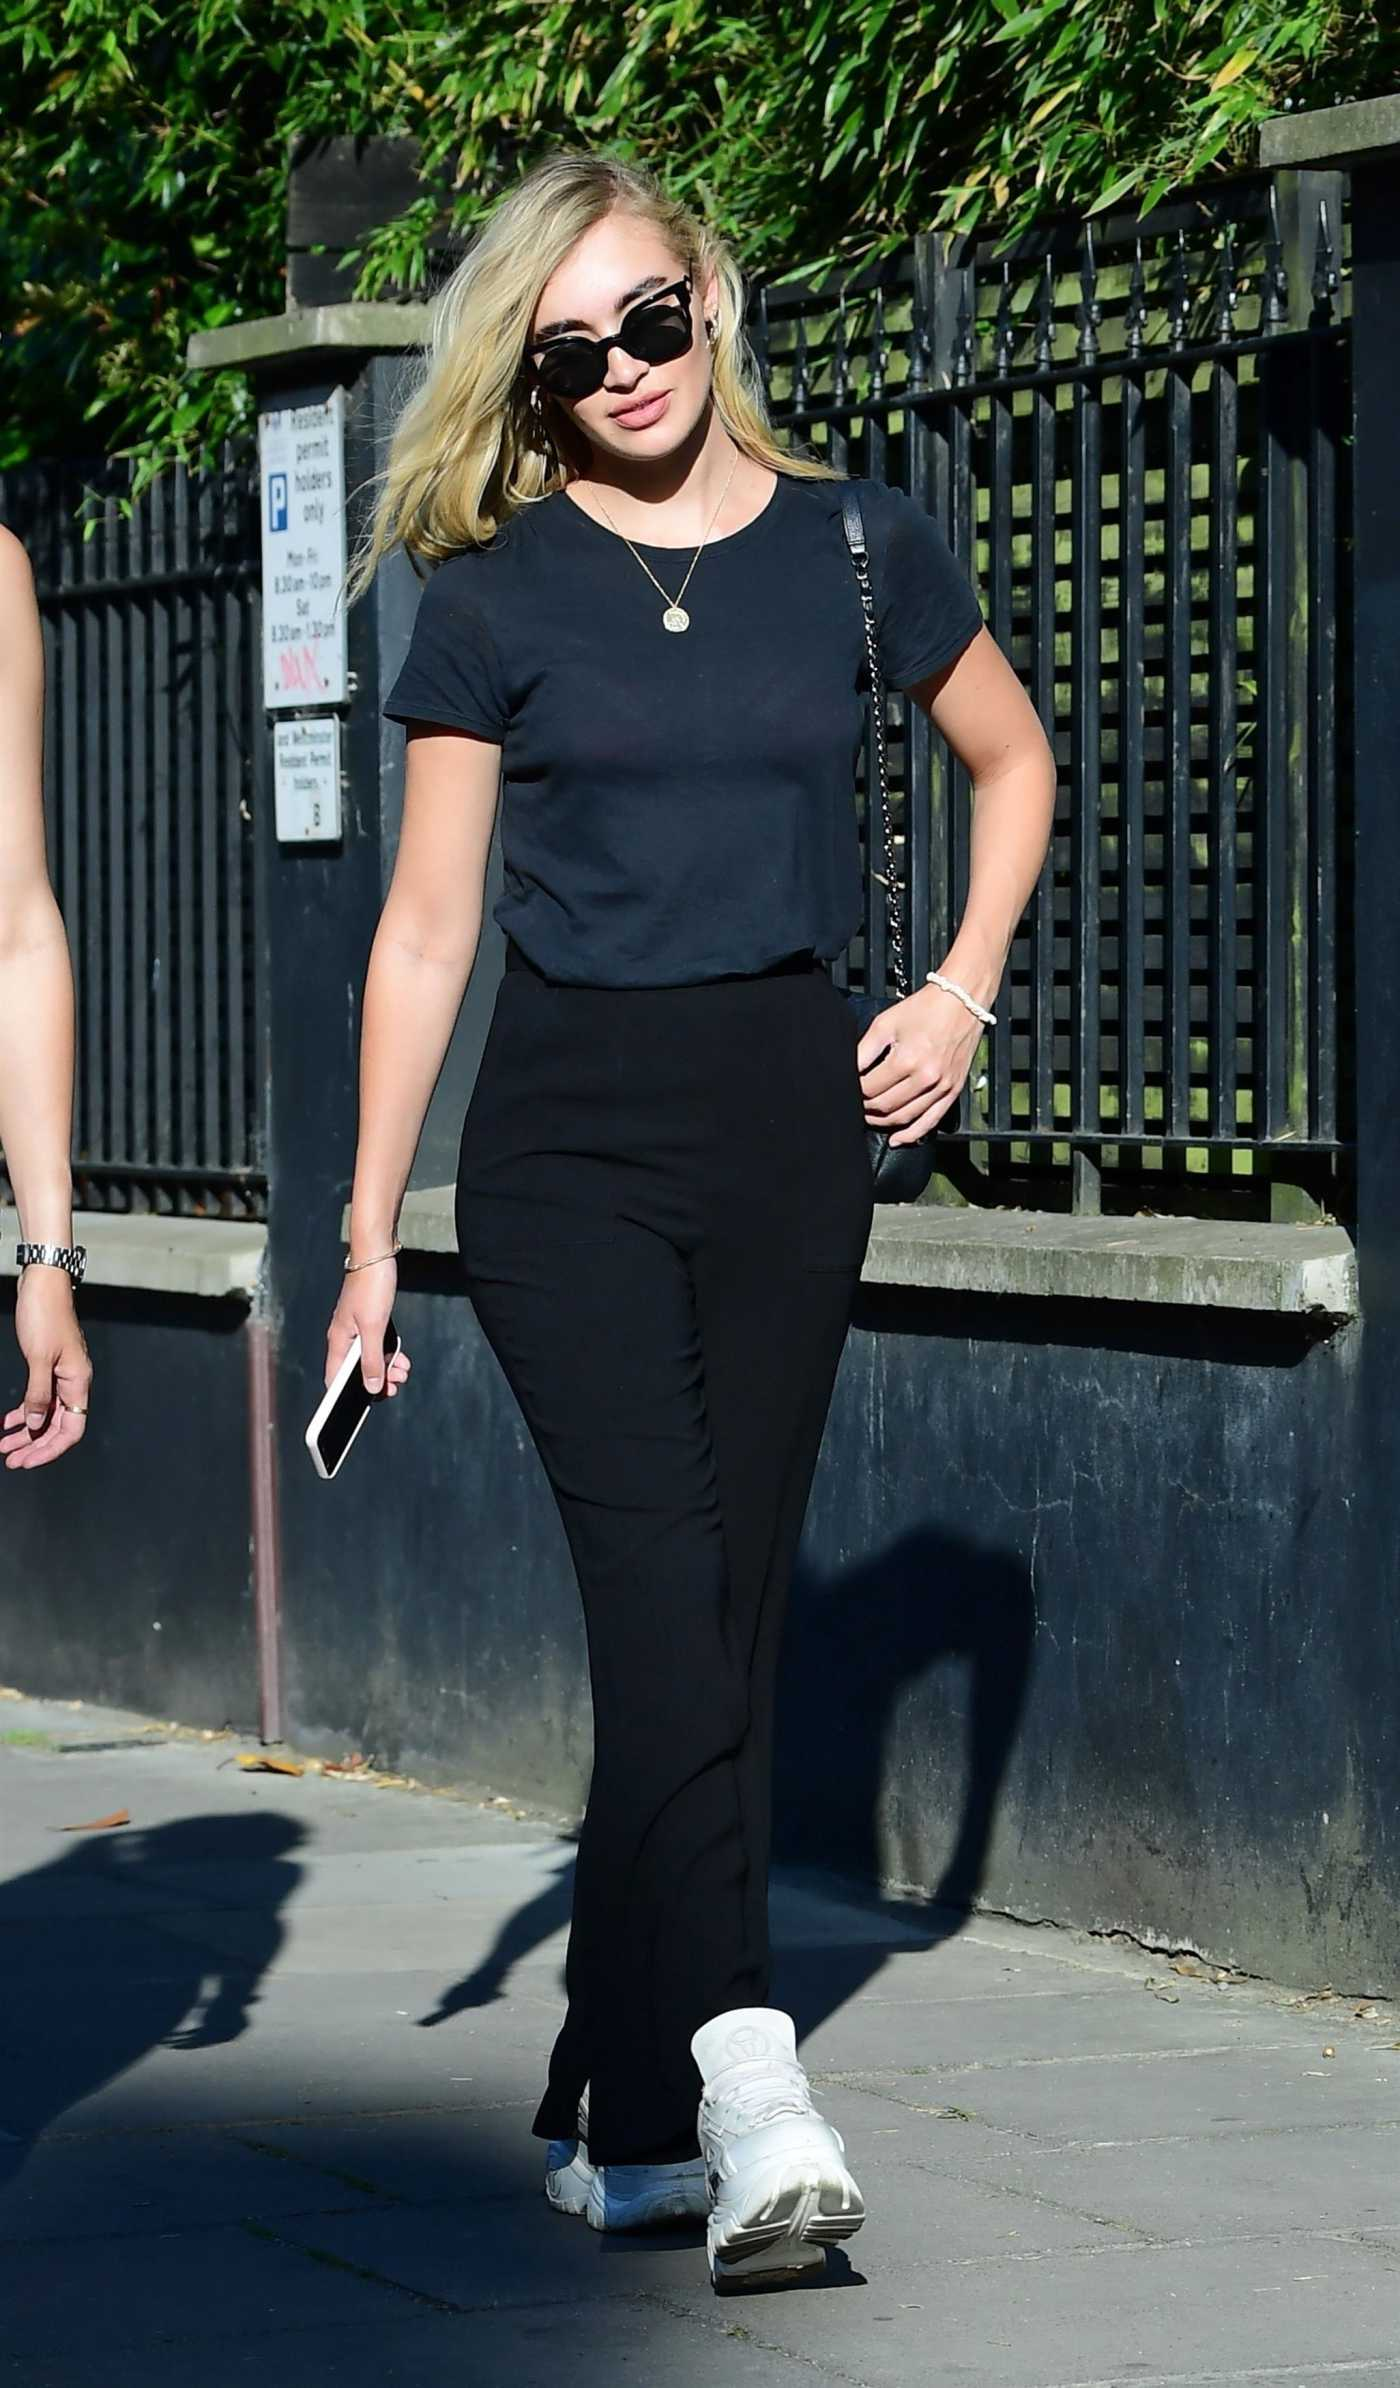 Roxy Horner in a Black Tee Was Seen Out with a Friend in London 06/02/2020